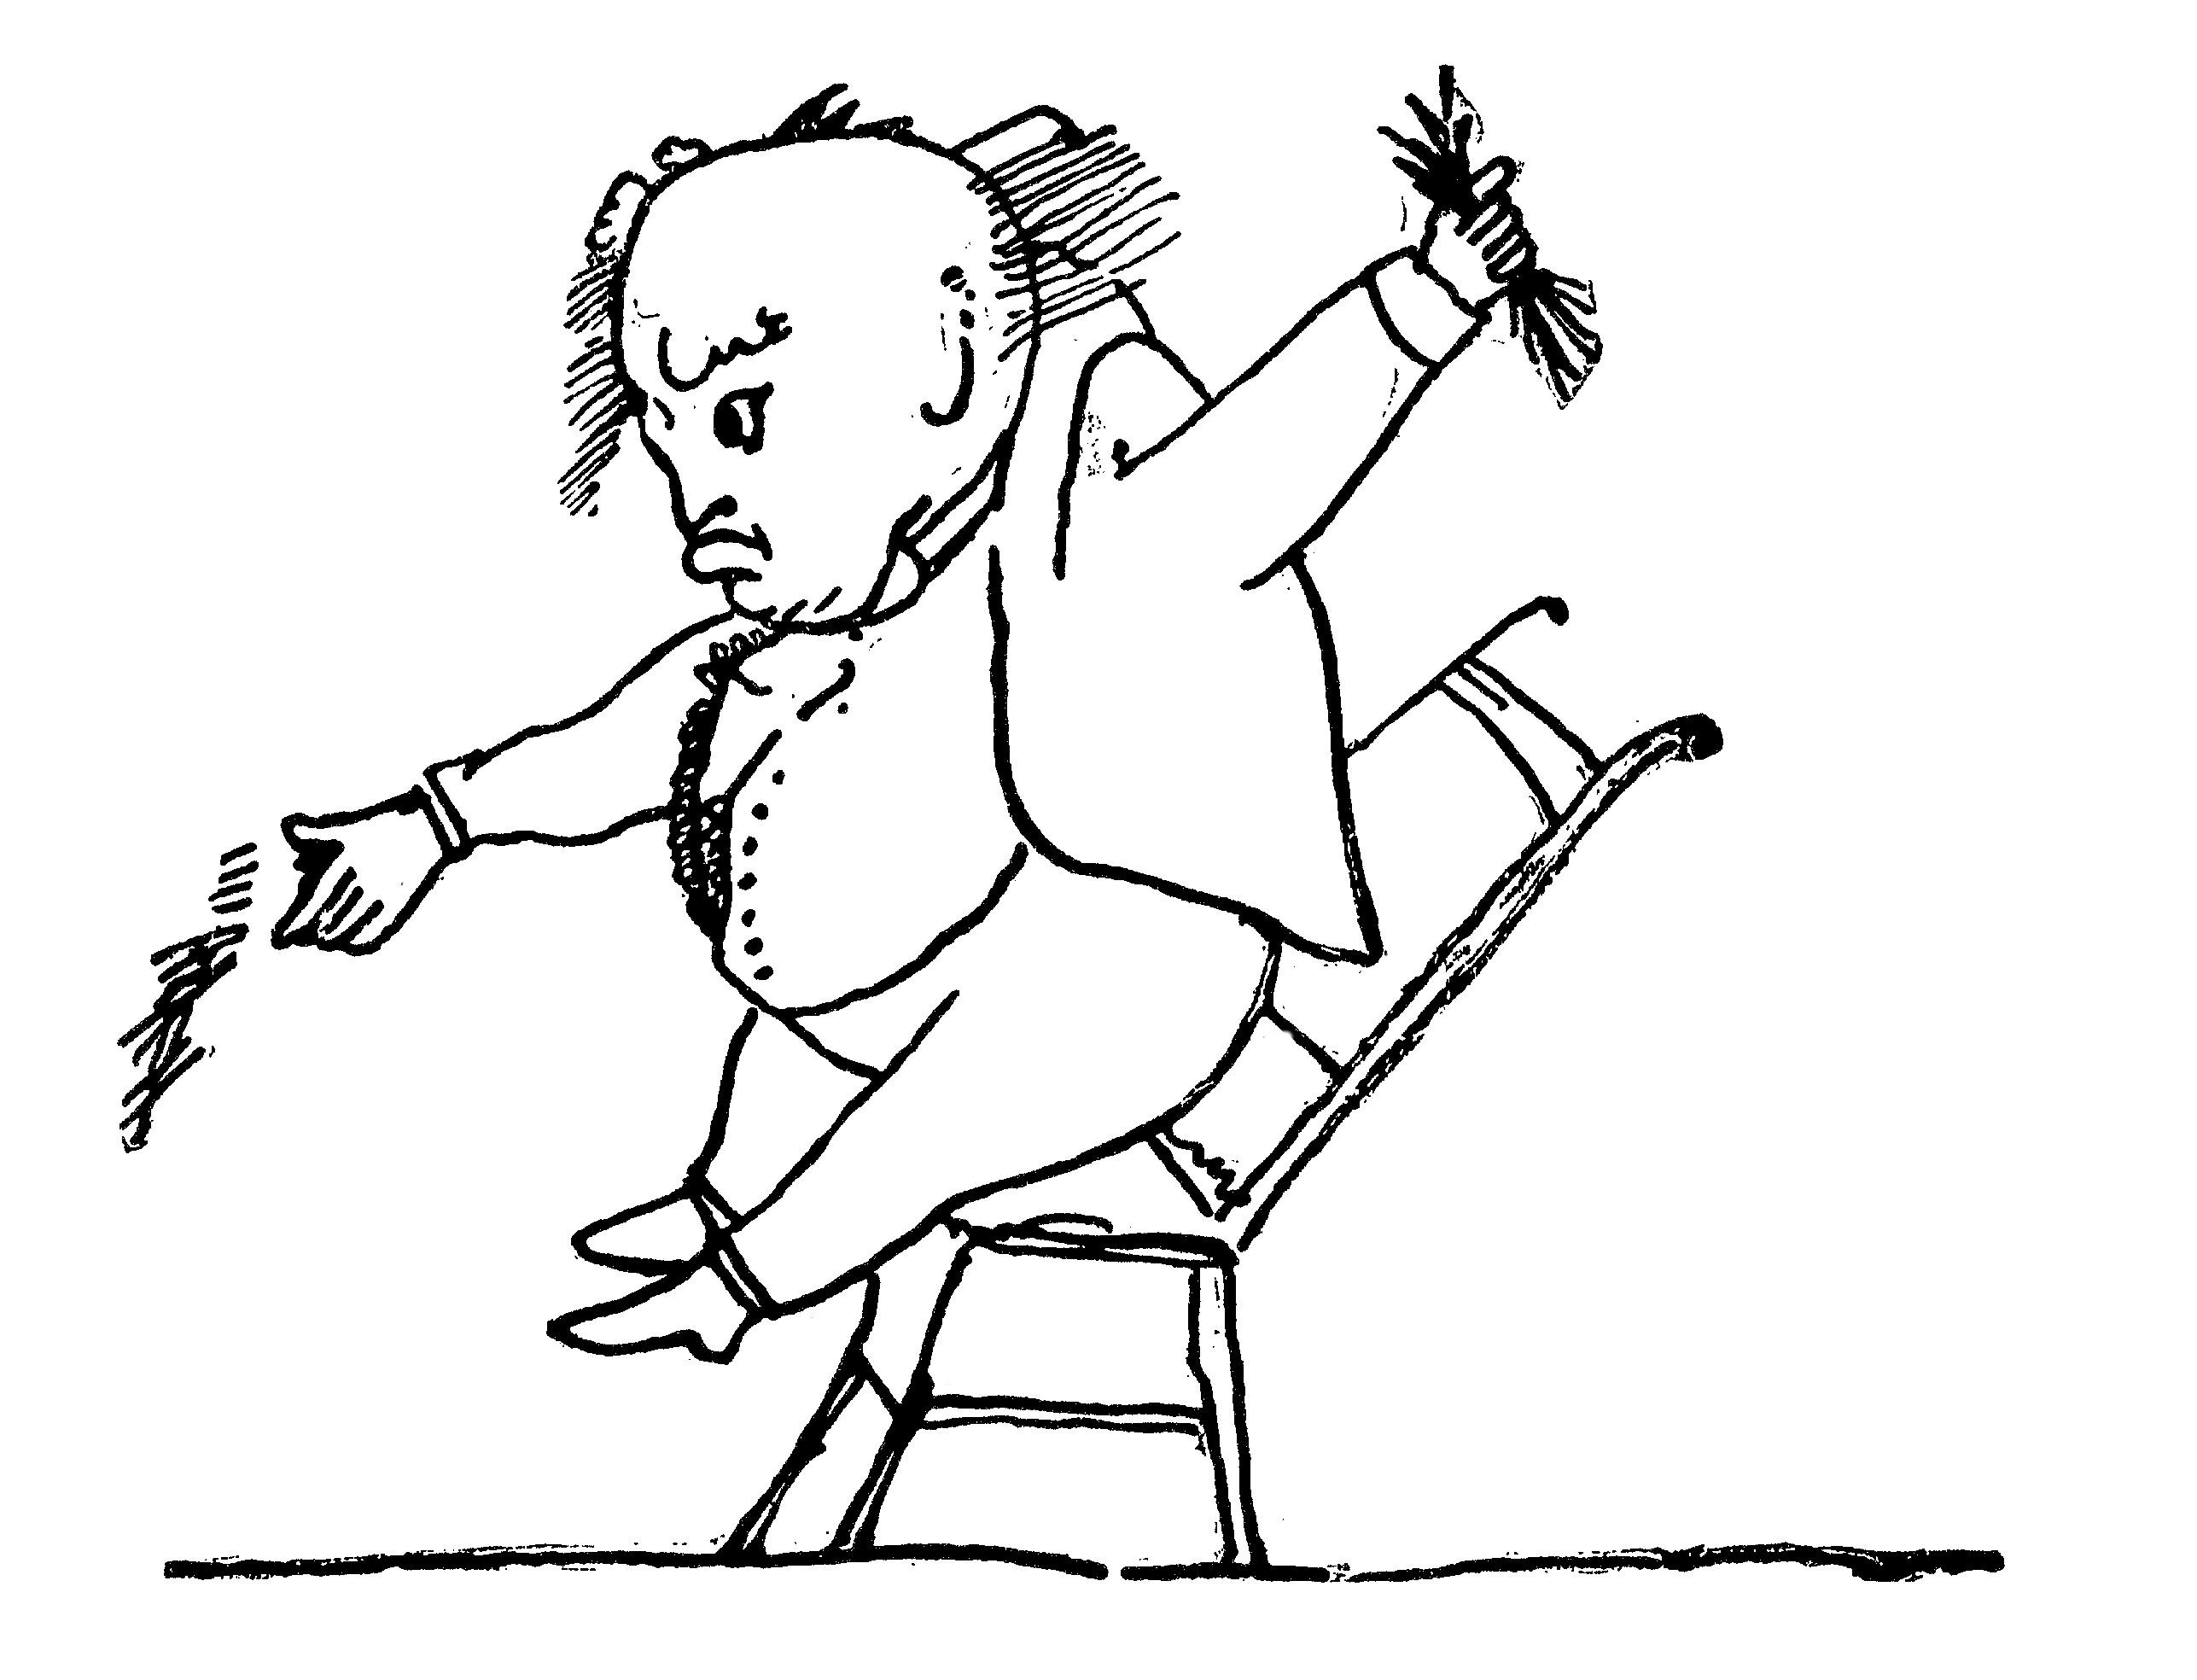 Edward Lear A Book of Nonsense 20.jpg